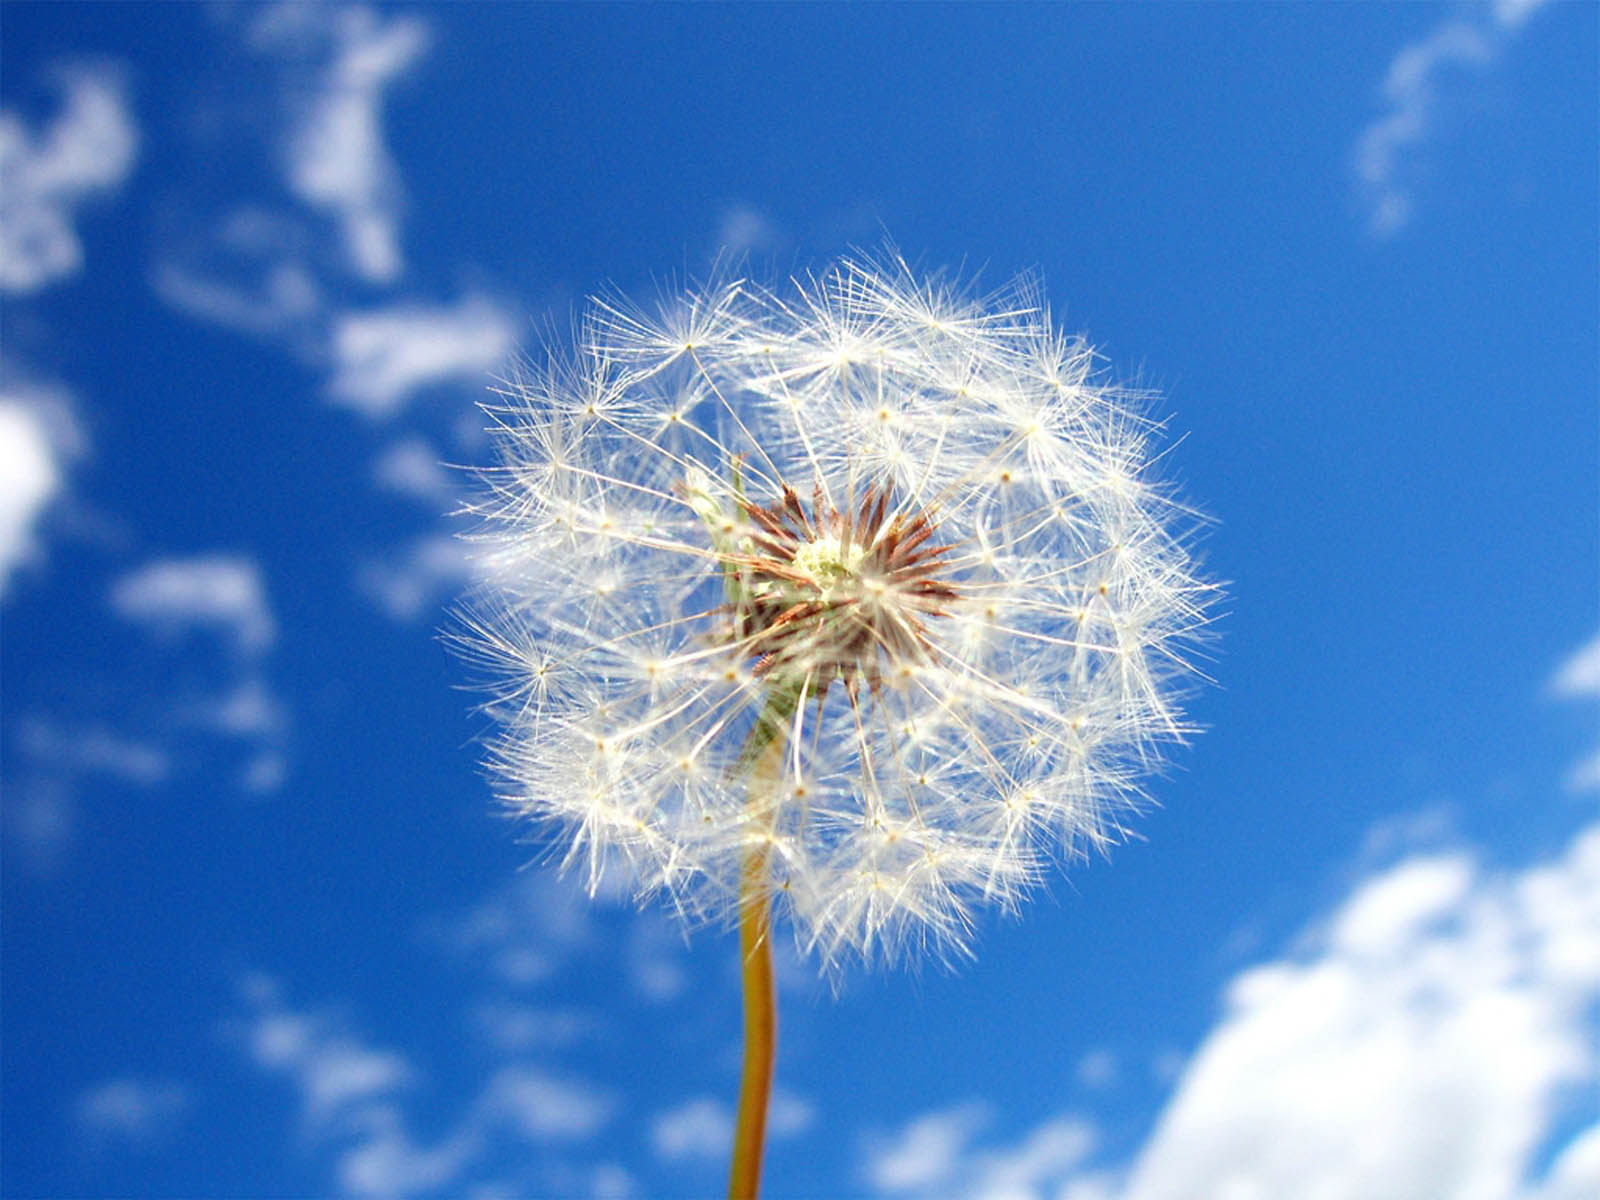 Tag: Dandelion Flowers Wallpapers, Backgrounds, Paos, Images and ...